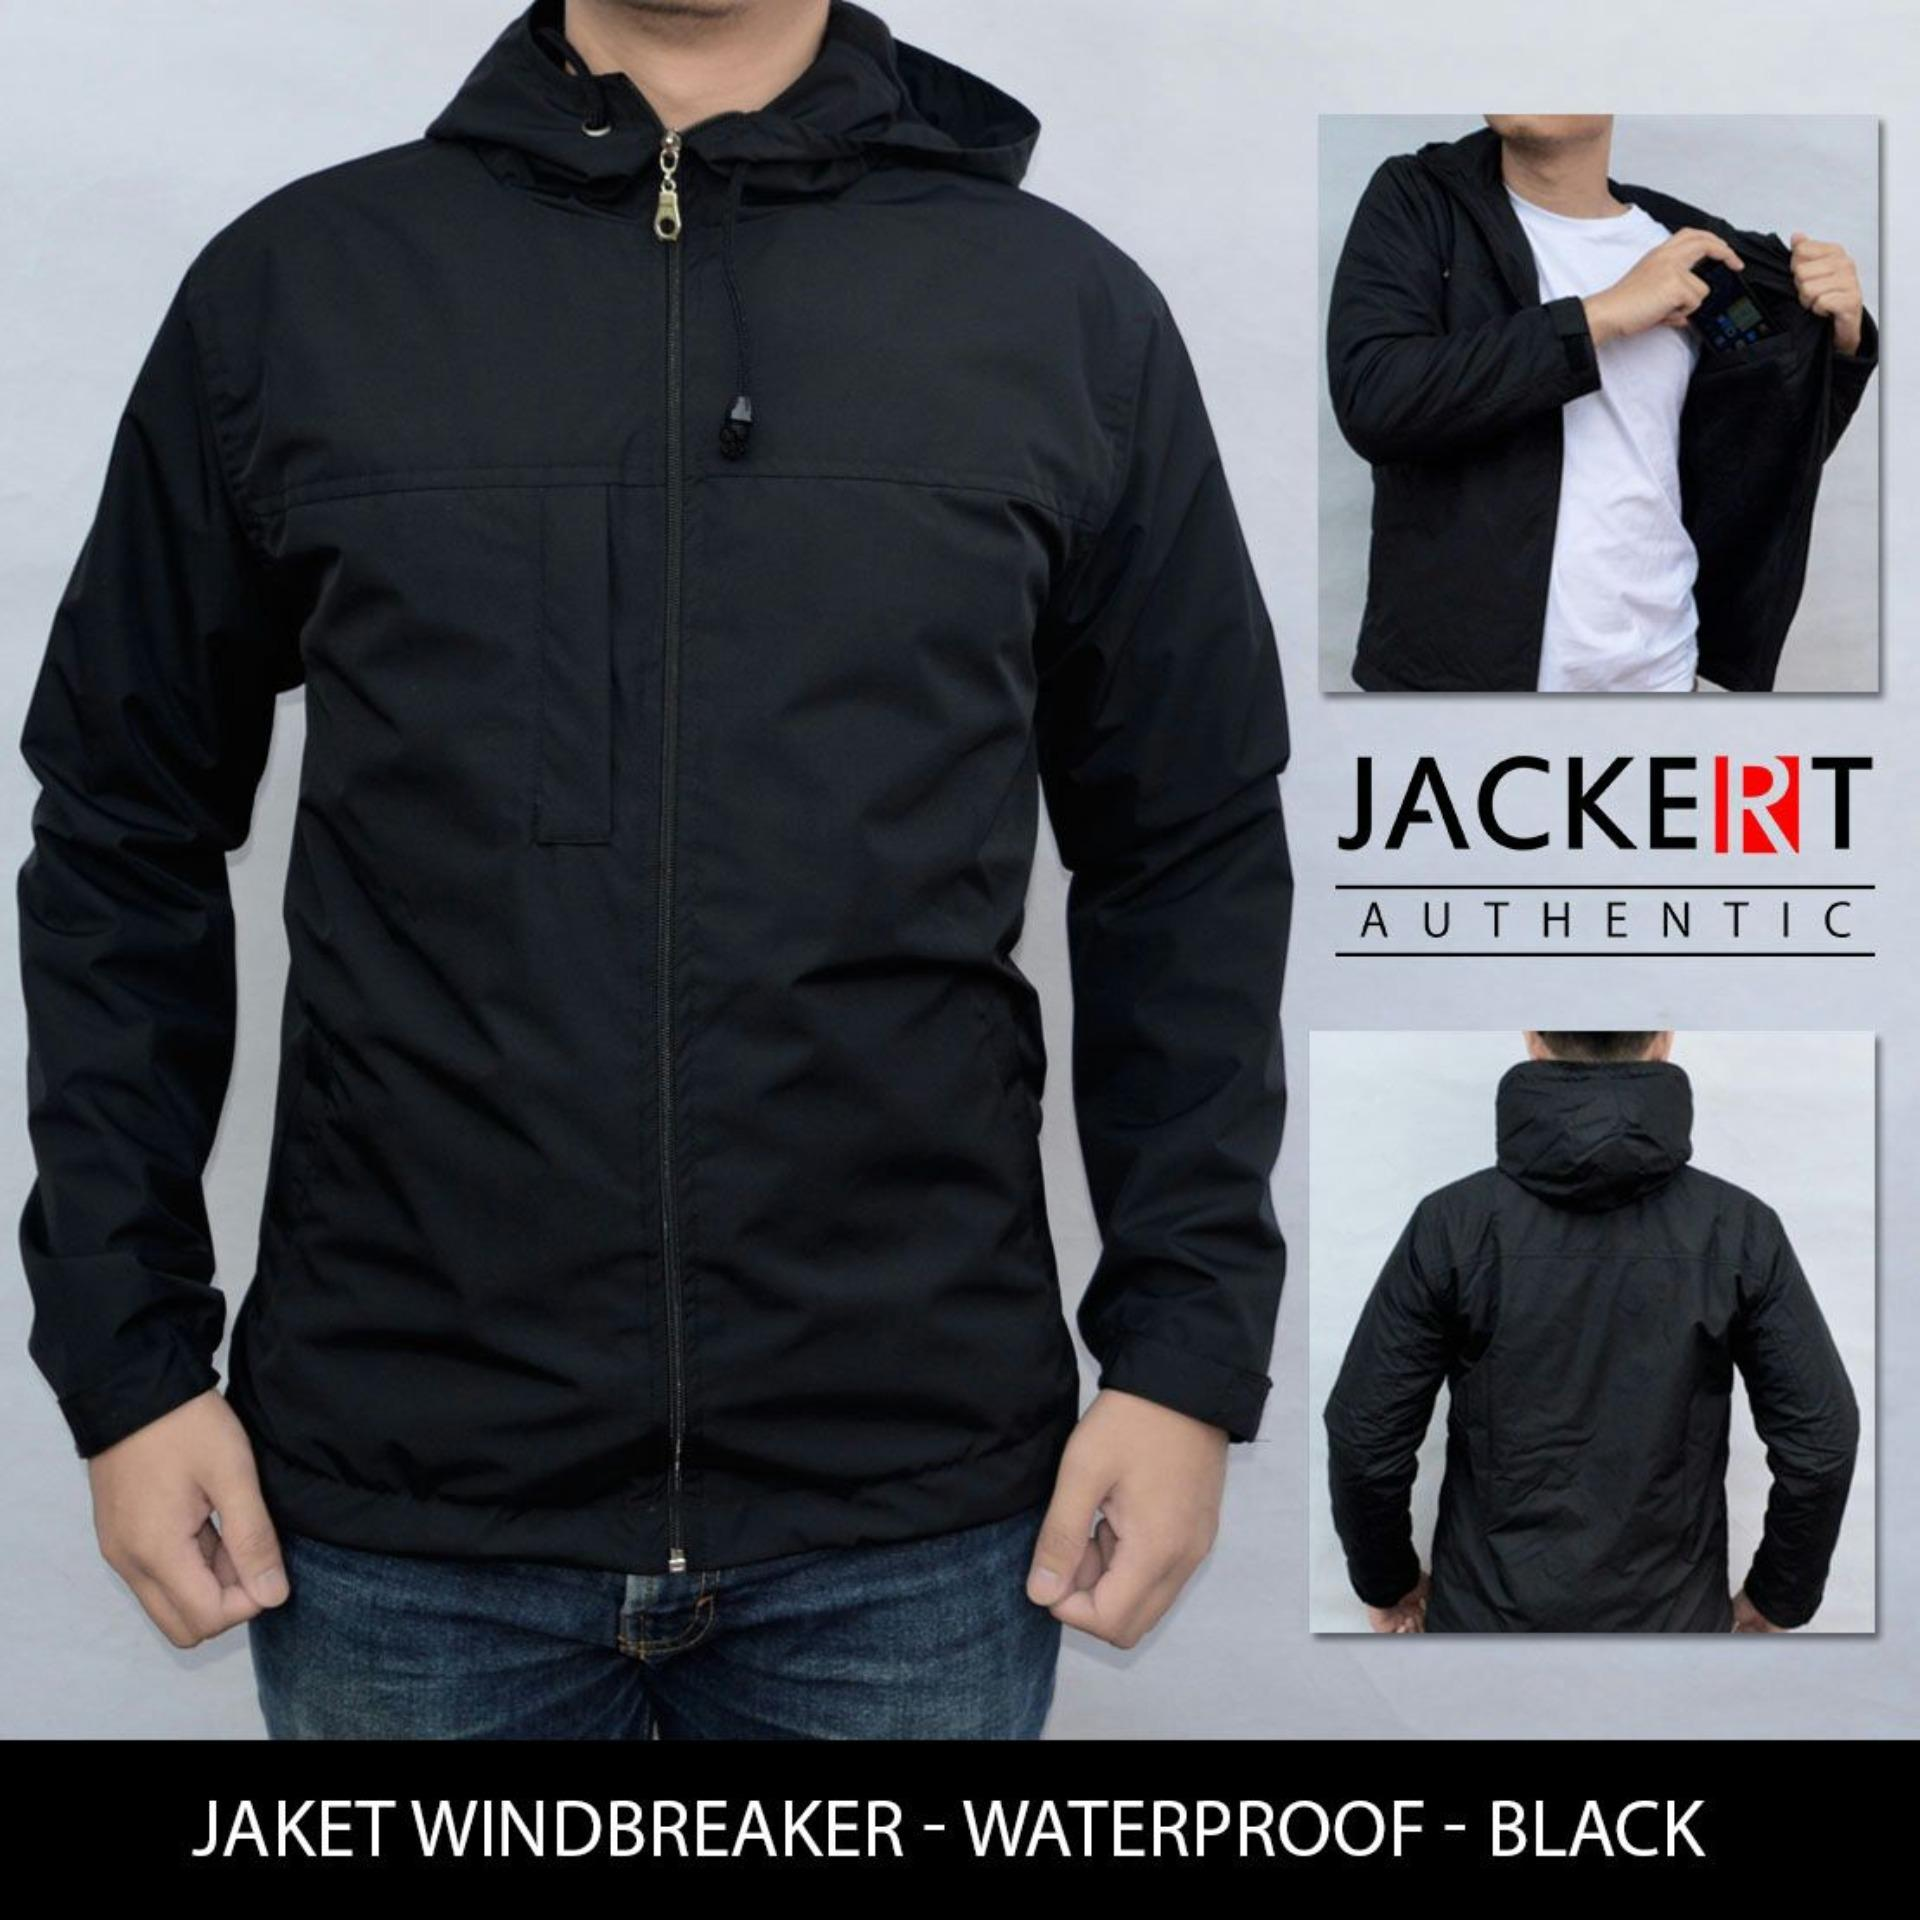 Toko Jaket Motor Harian Model Simple Polos Hitam Waterproof Semi Outdoor Terlengkap Di Indonesia